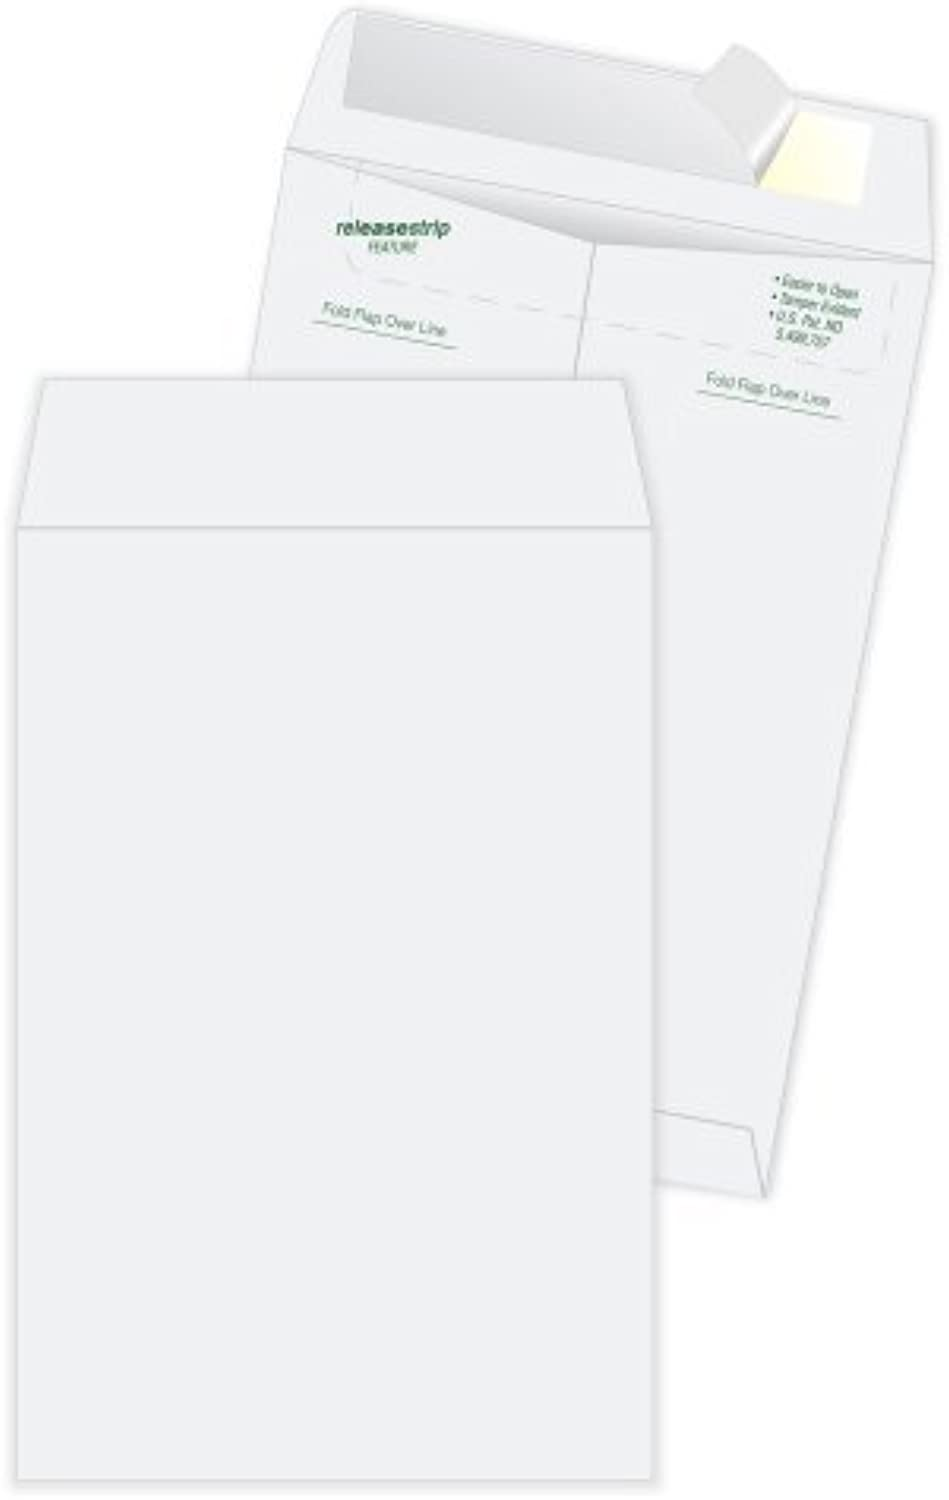 Quality Park Park Park Tyvek Catalog Envelope, 6 Inches x 9 Inches, Weiß, Pack of 20 (R1319) by Quality Park B0141MNR84 | Export